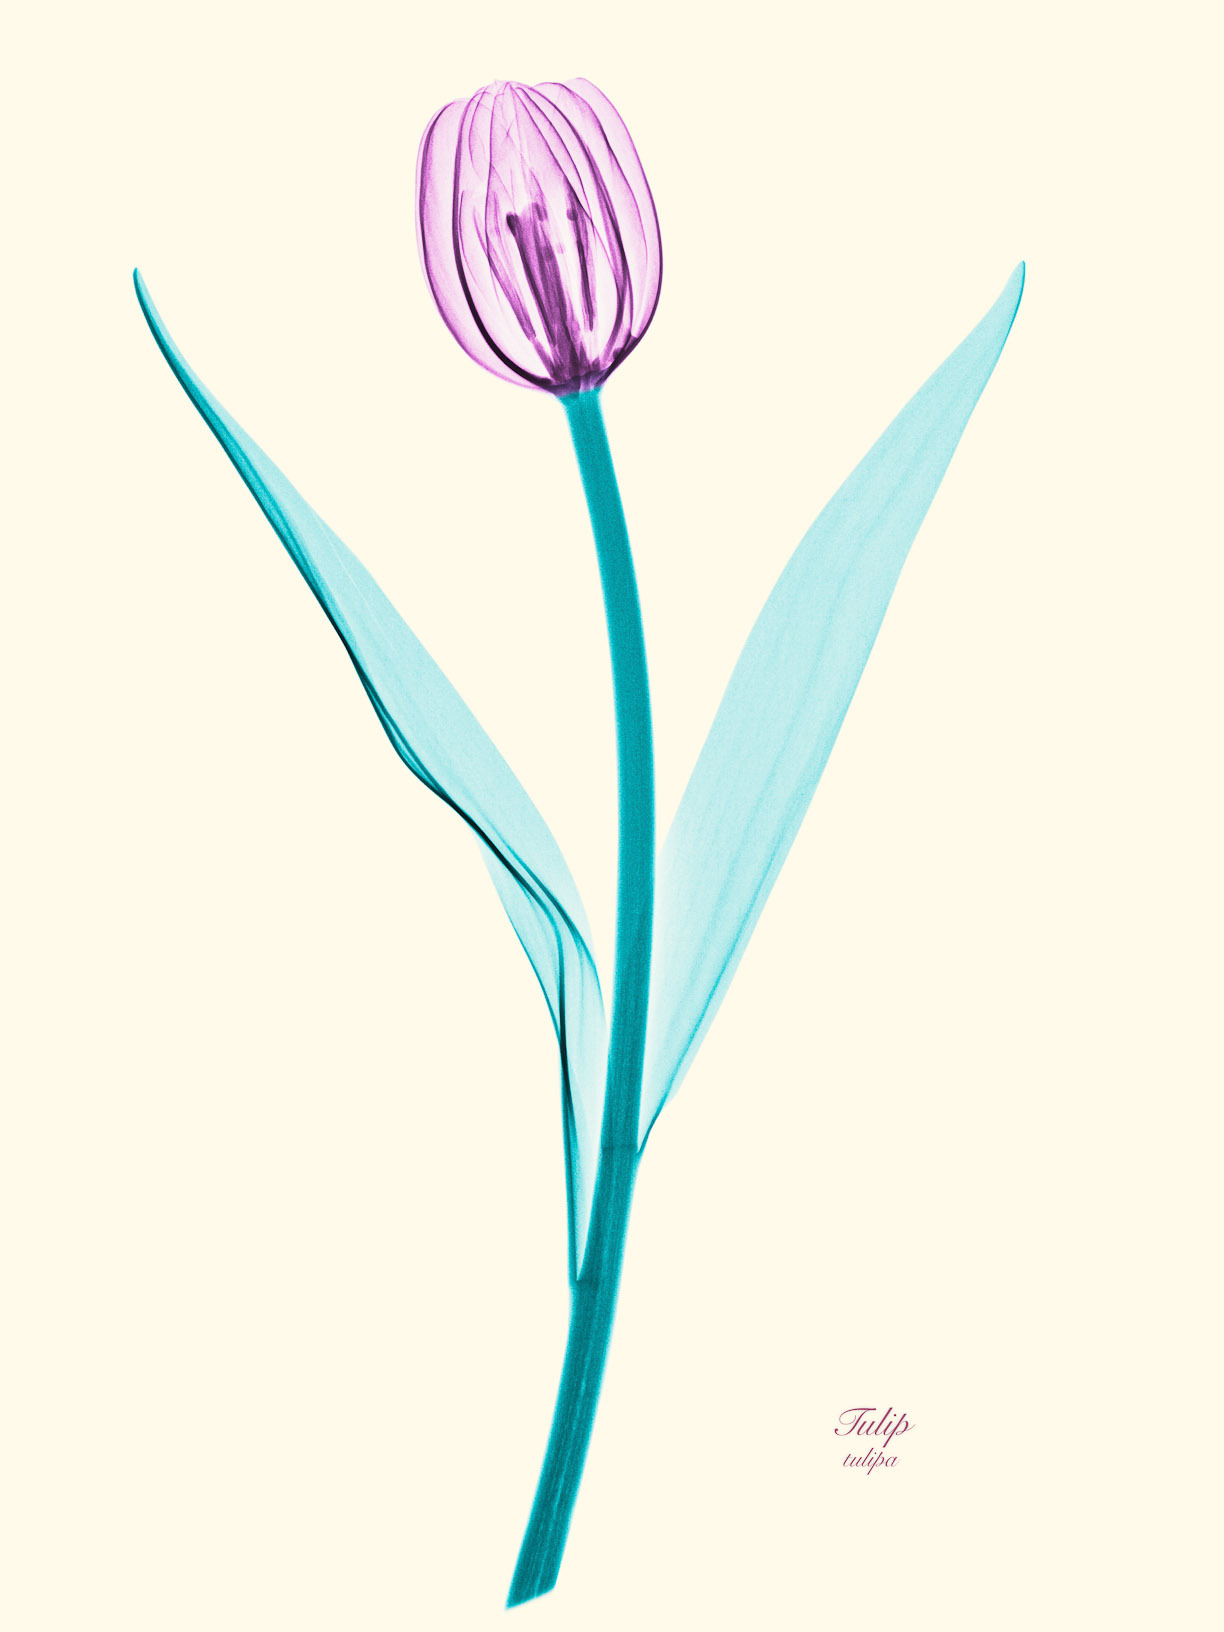 X-Ray Photograph of a Tulip - Brendan Fitzpatrick